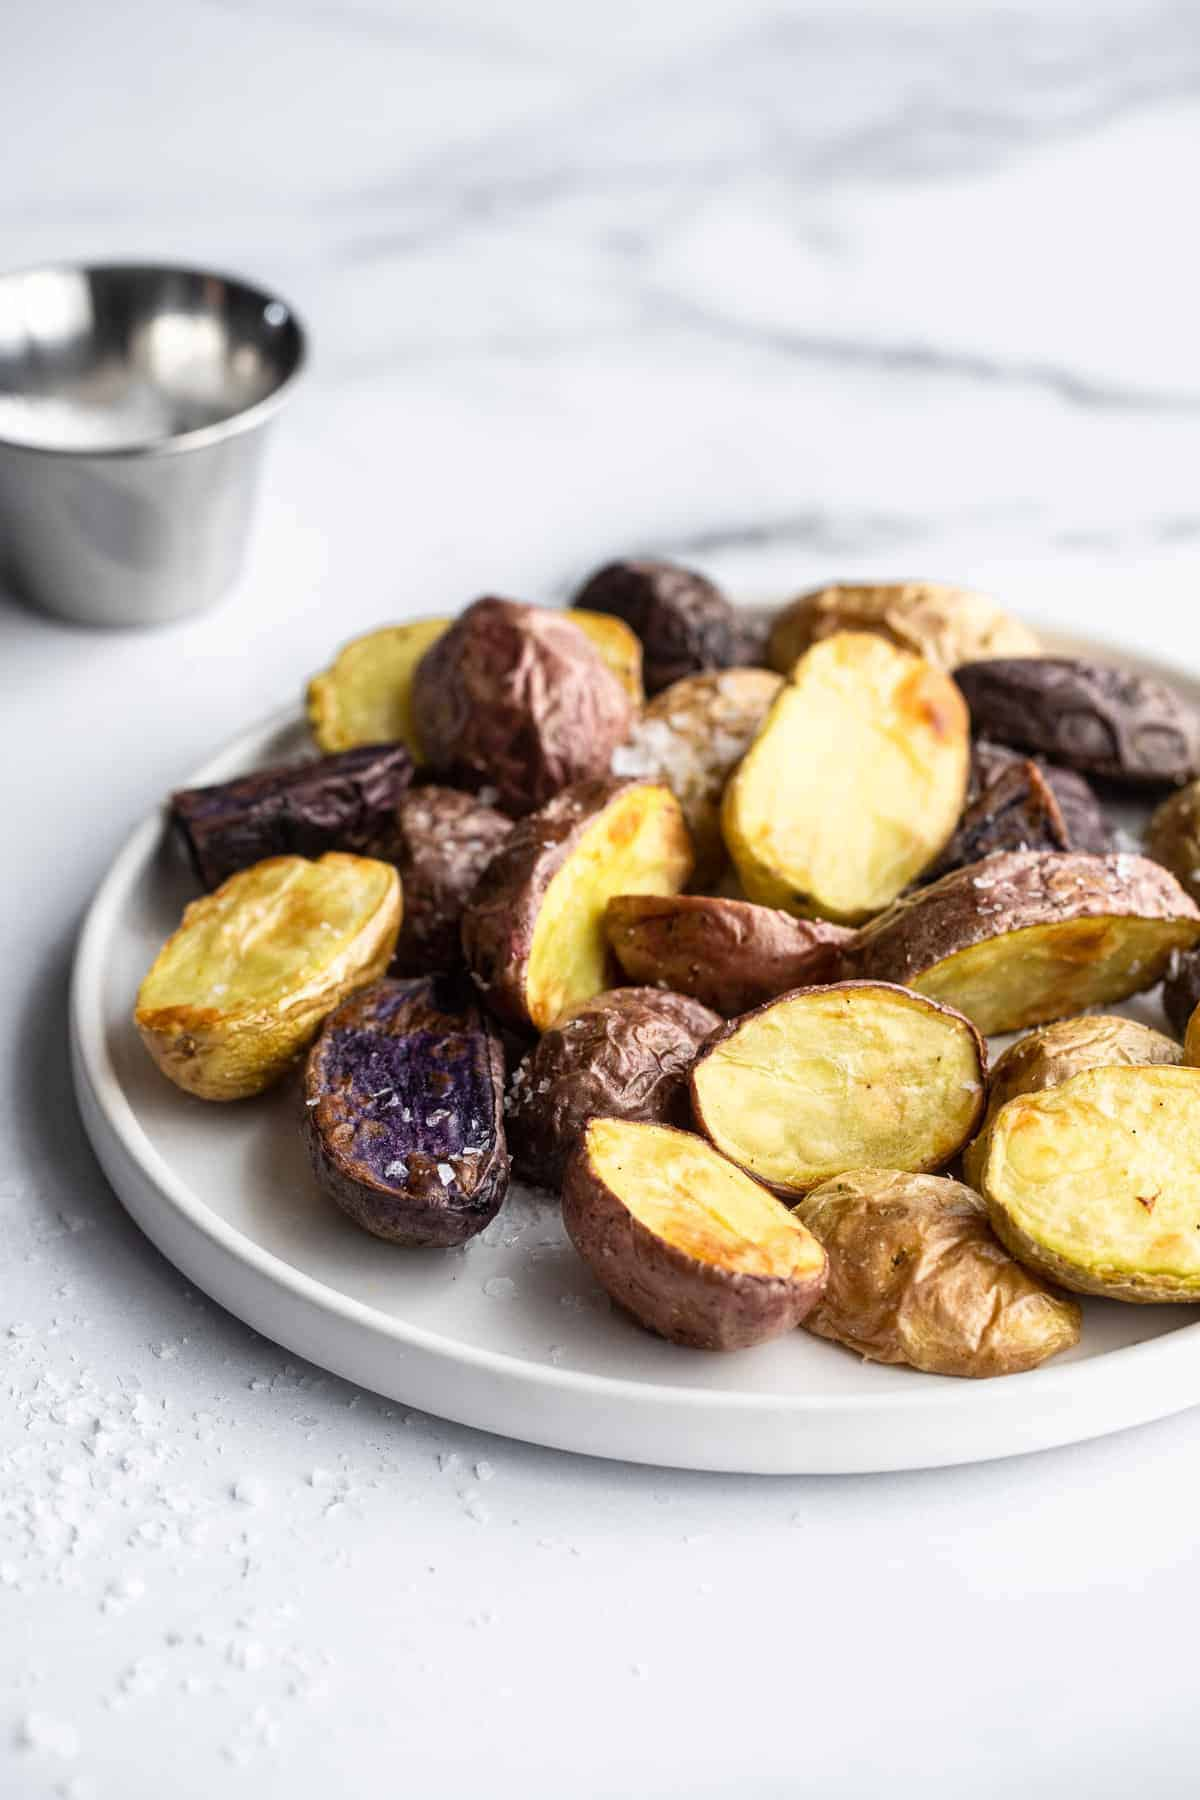 a pile of air fryer roasted potatoes on a plate